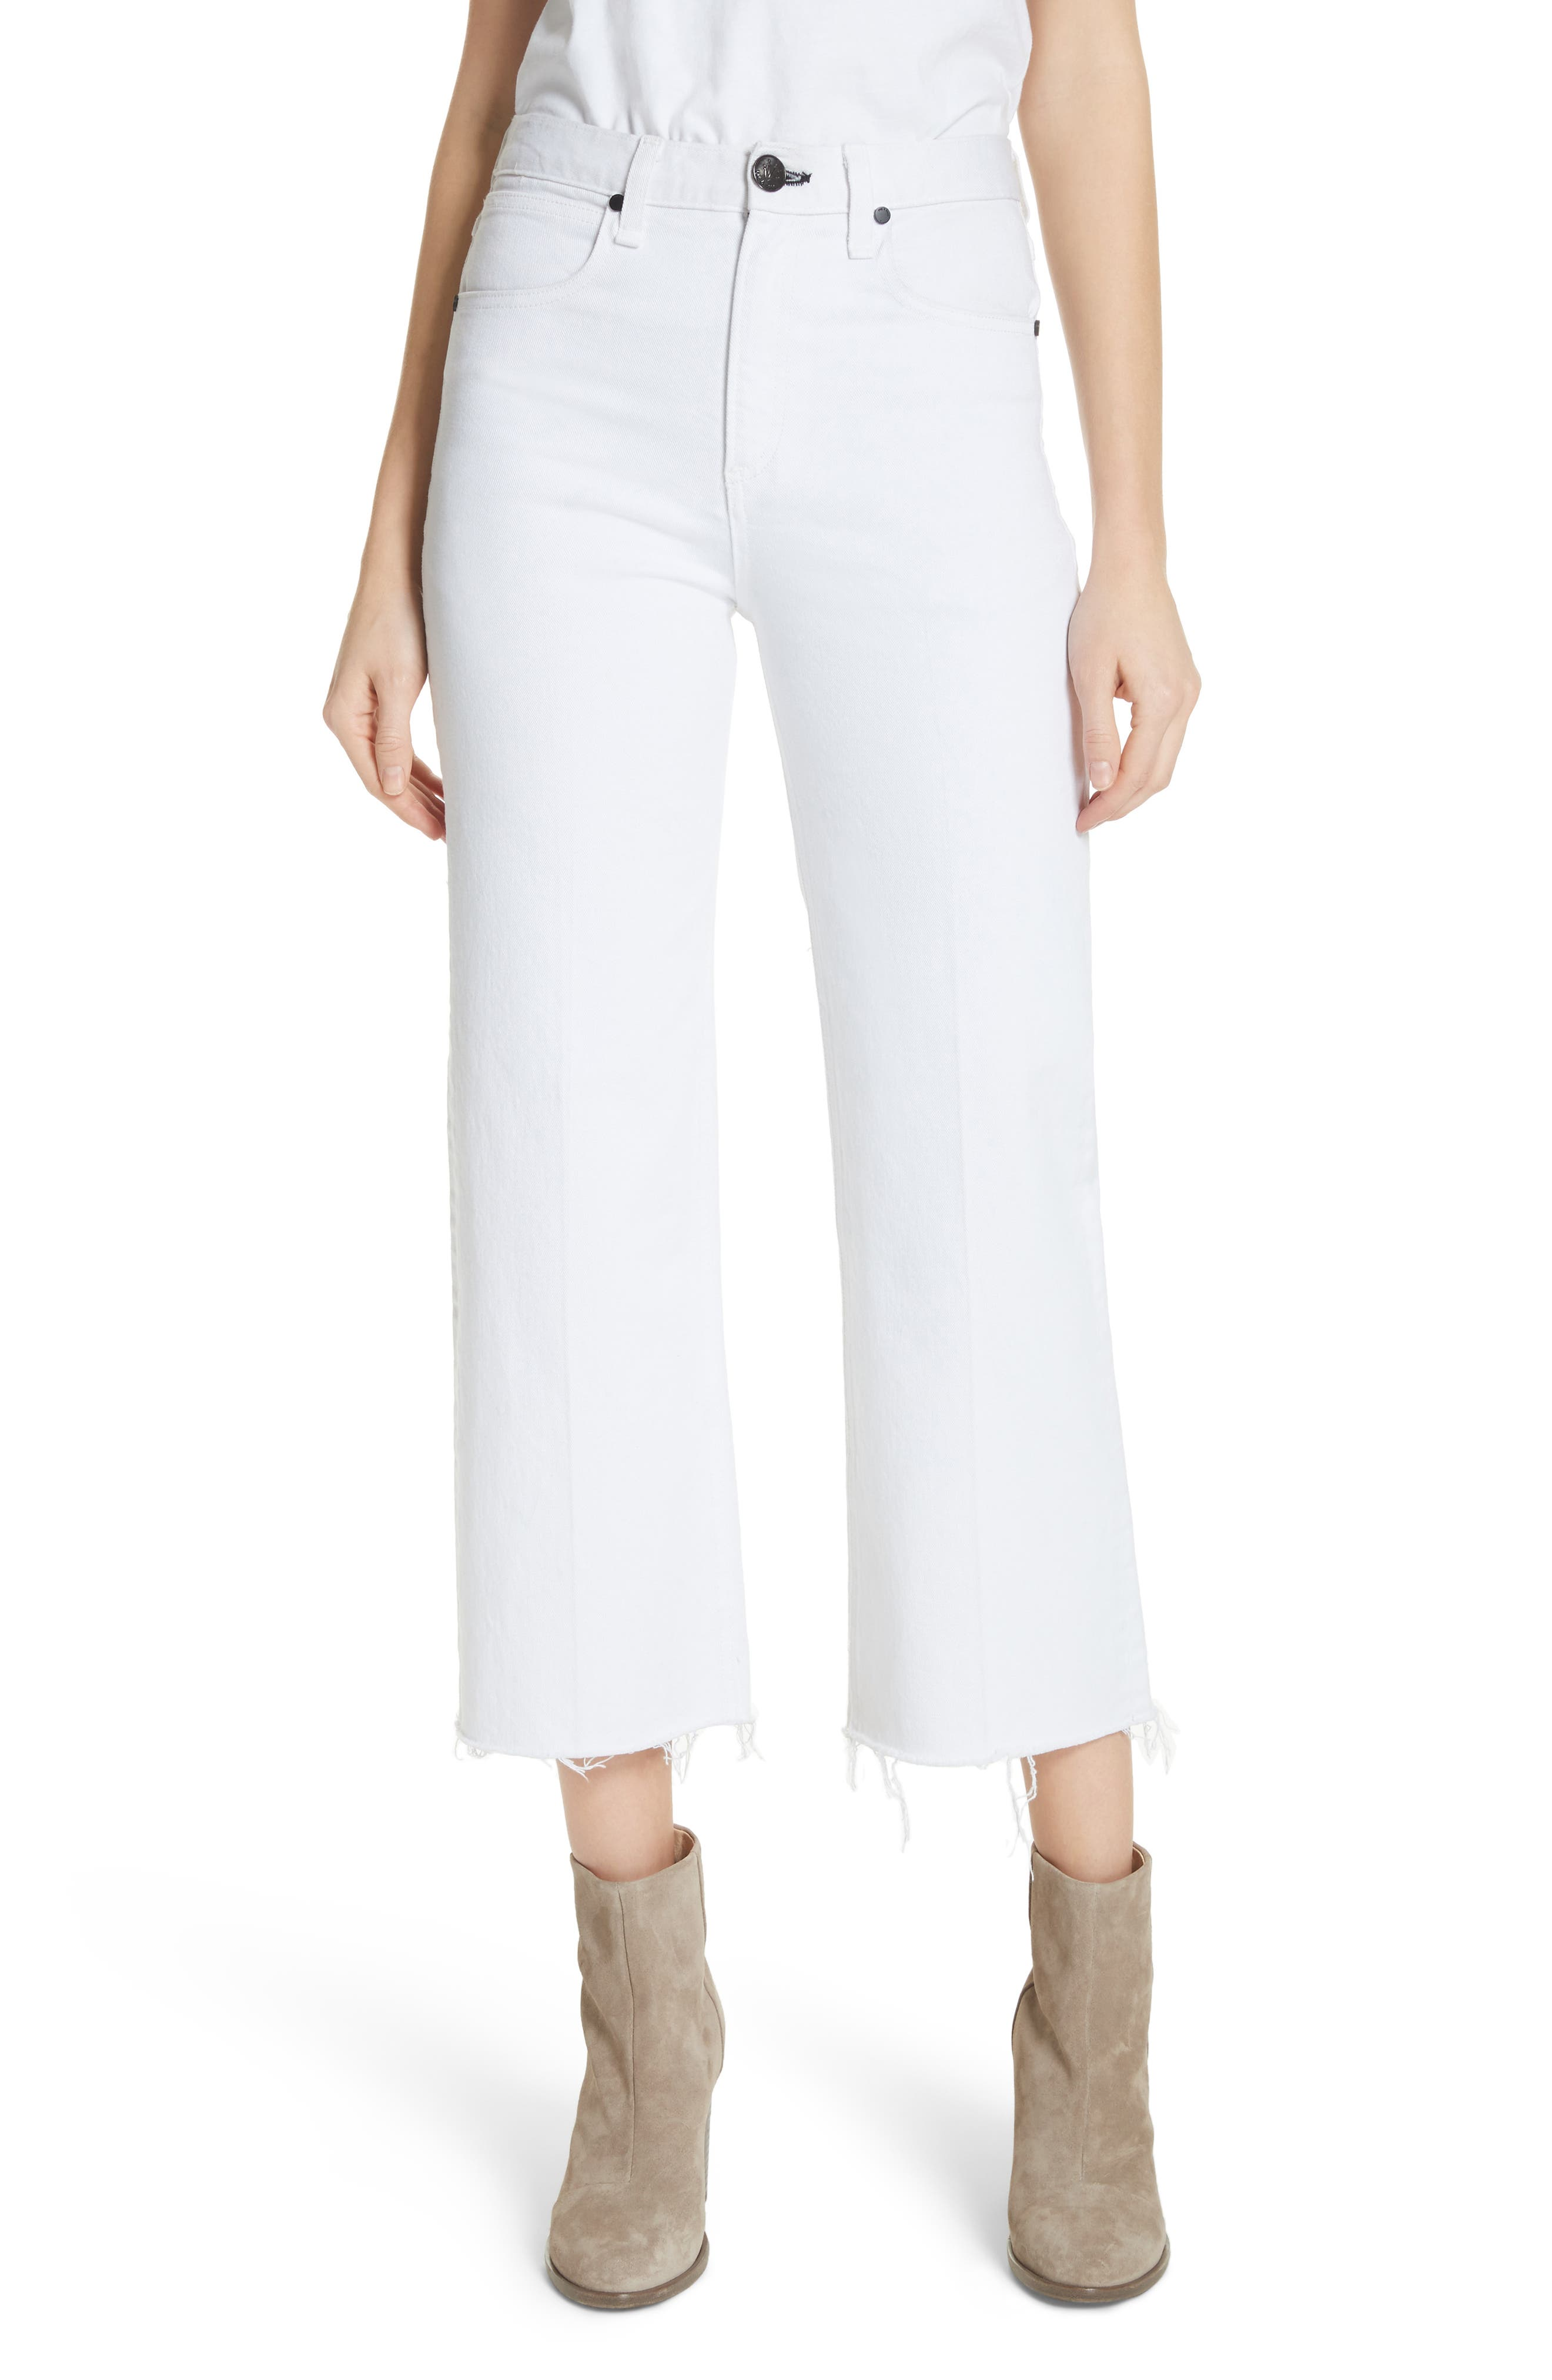 Justine High Waist Ankle Wide Leg Trouser Jeans,                         Main,                         color, 100